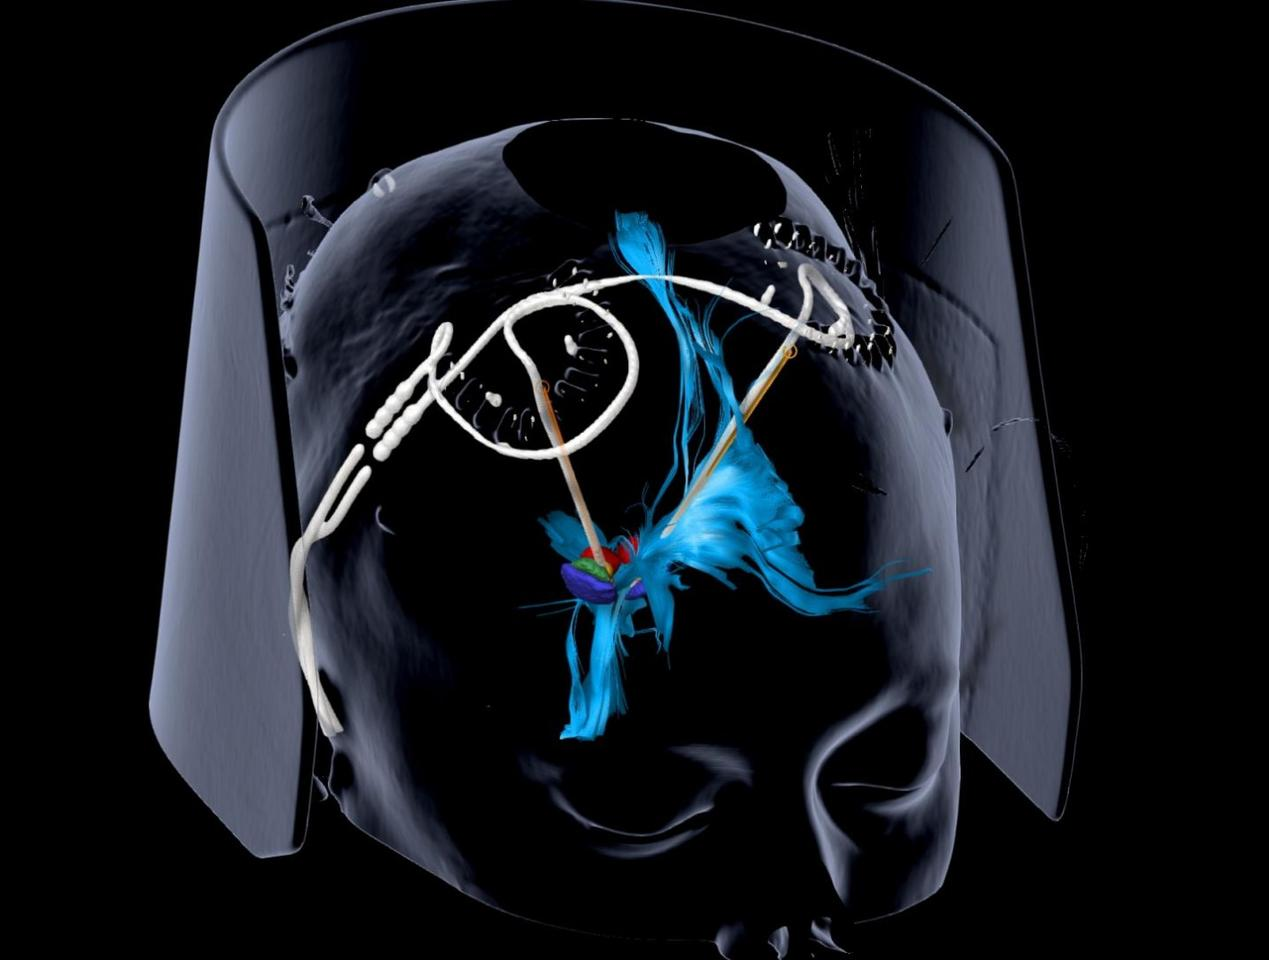 Researchers implanted electrodes into the brain's medial forebrain bundle, seen in blue, as a way of treating depression, and found some promising results